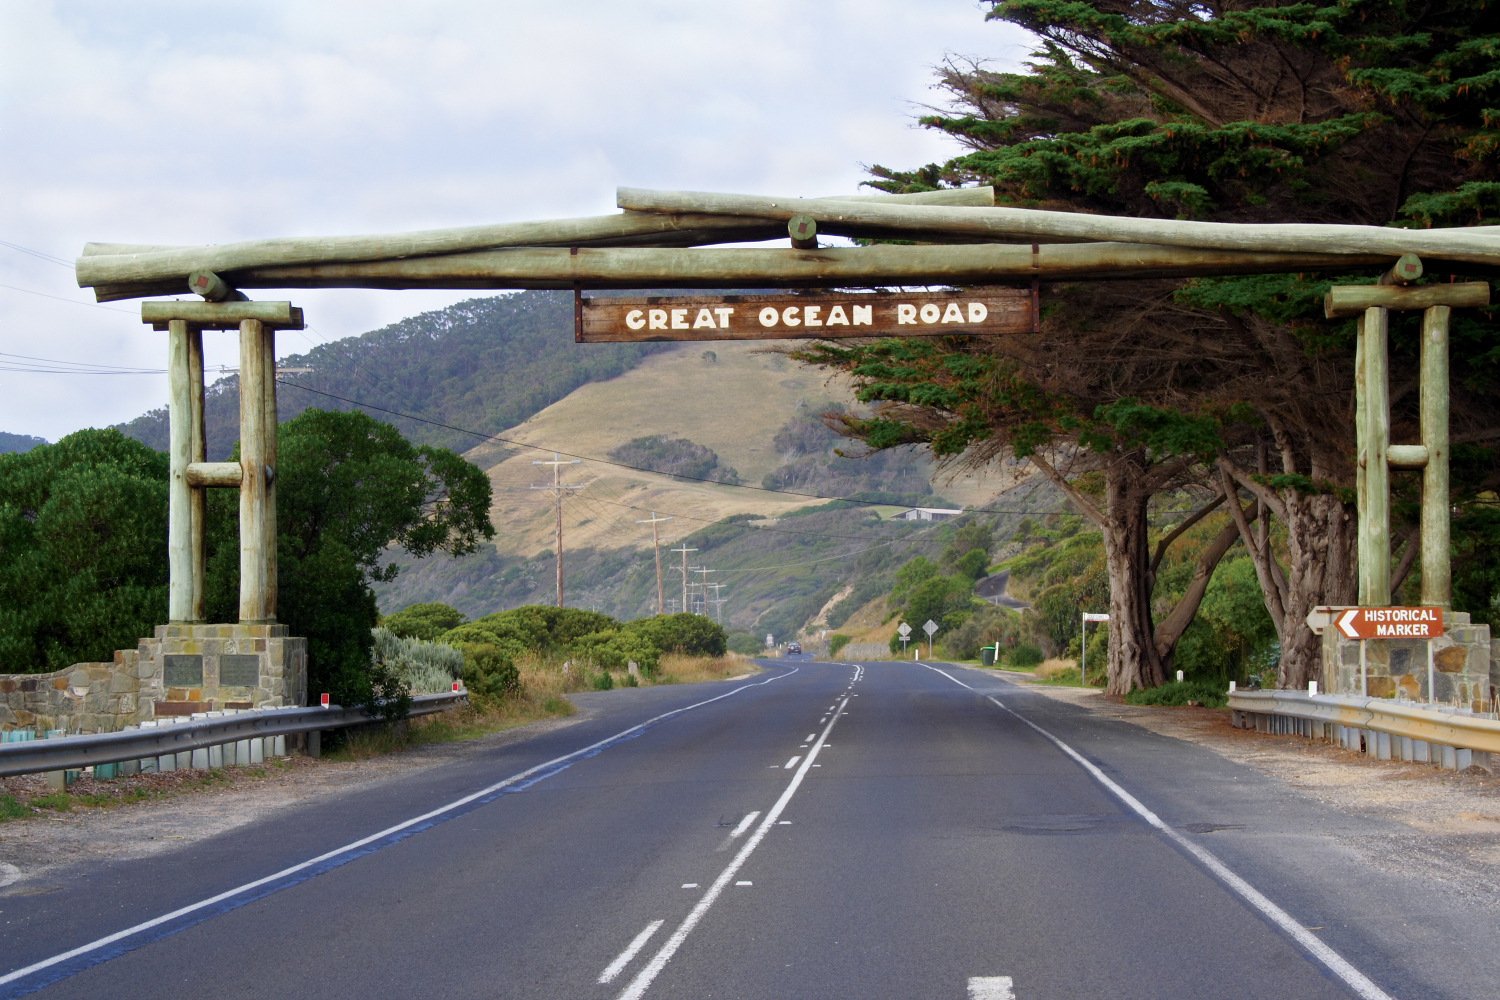 The first official sign on the great ocean road is the memorial arch.